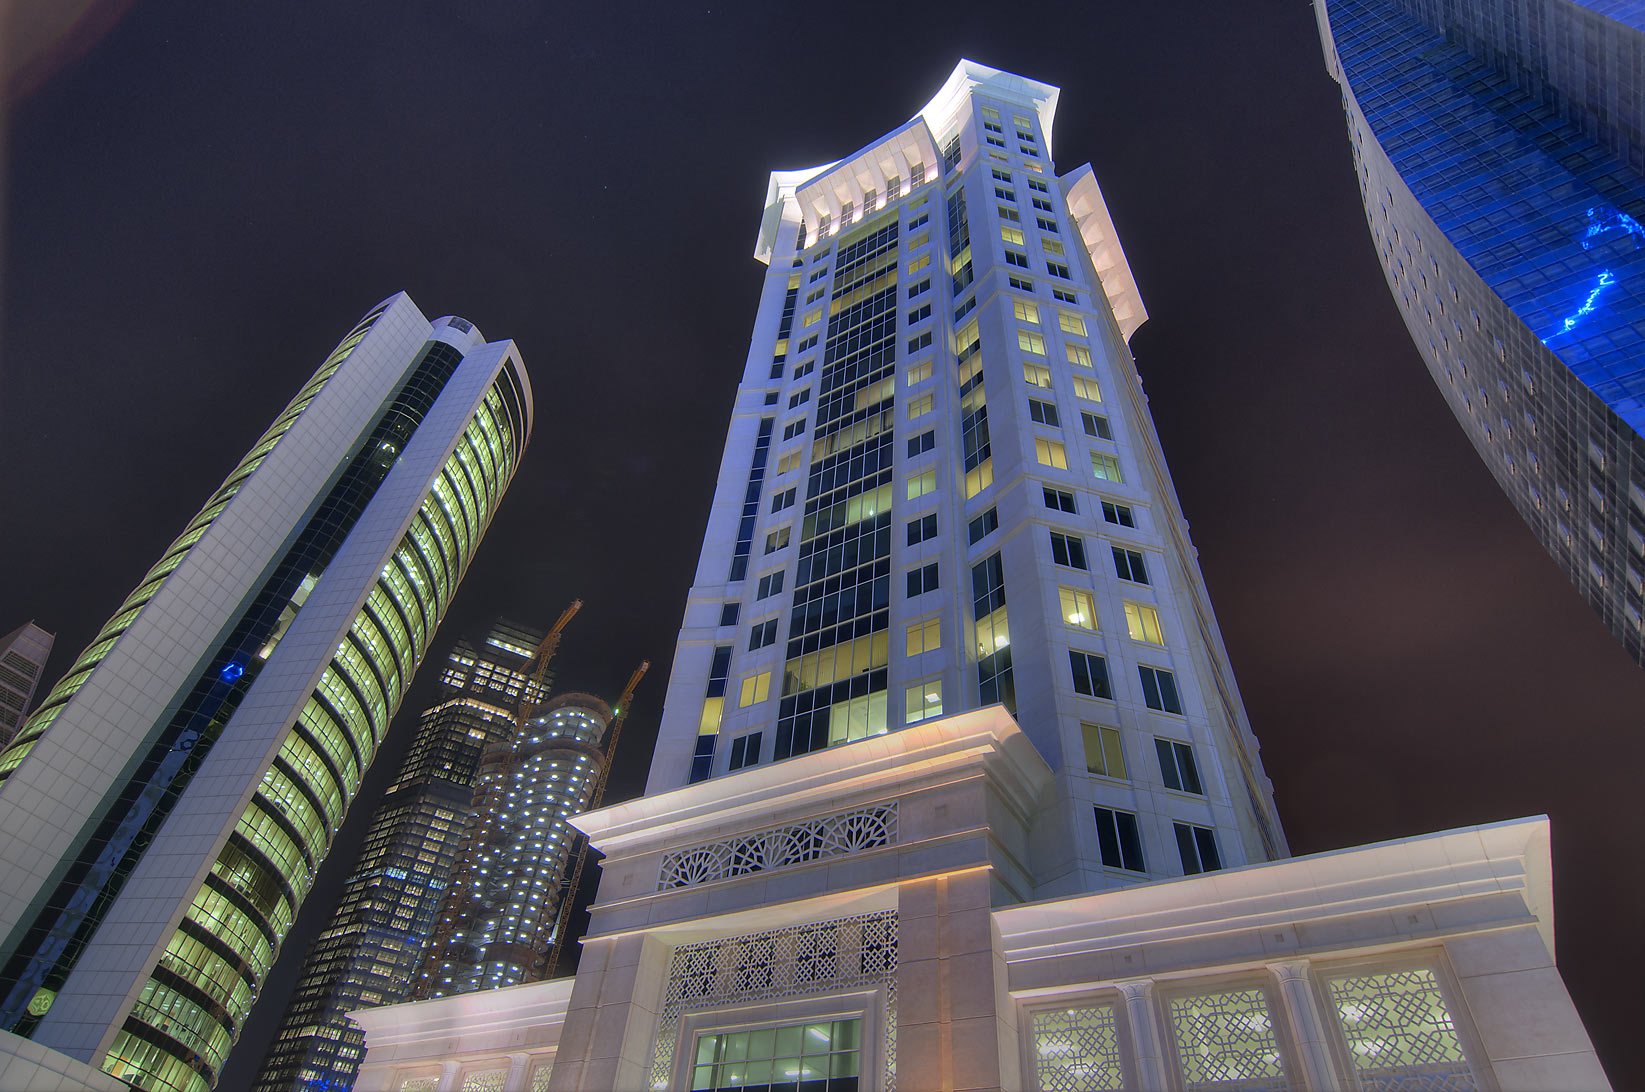 Al Qassar Tower in West Bay. Doha, Qatar